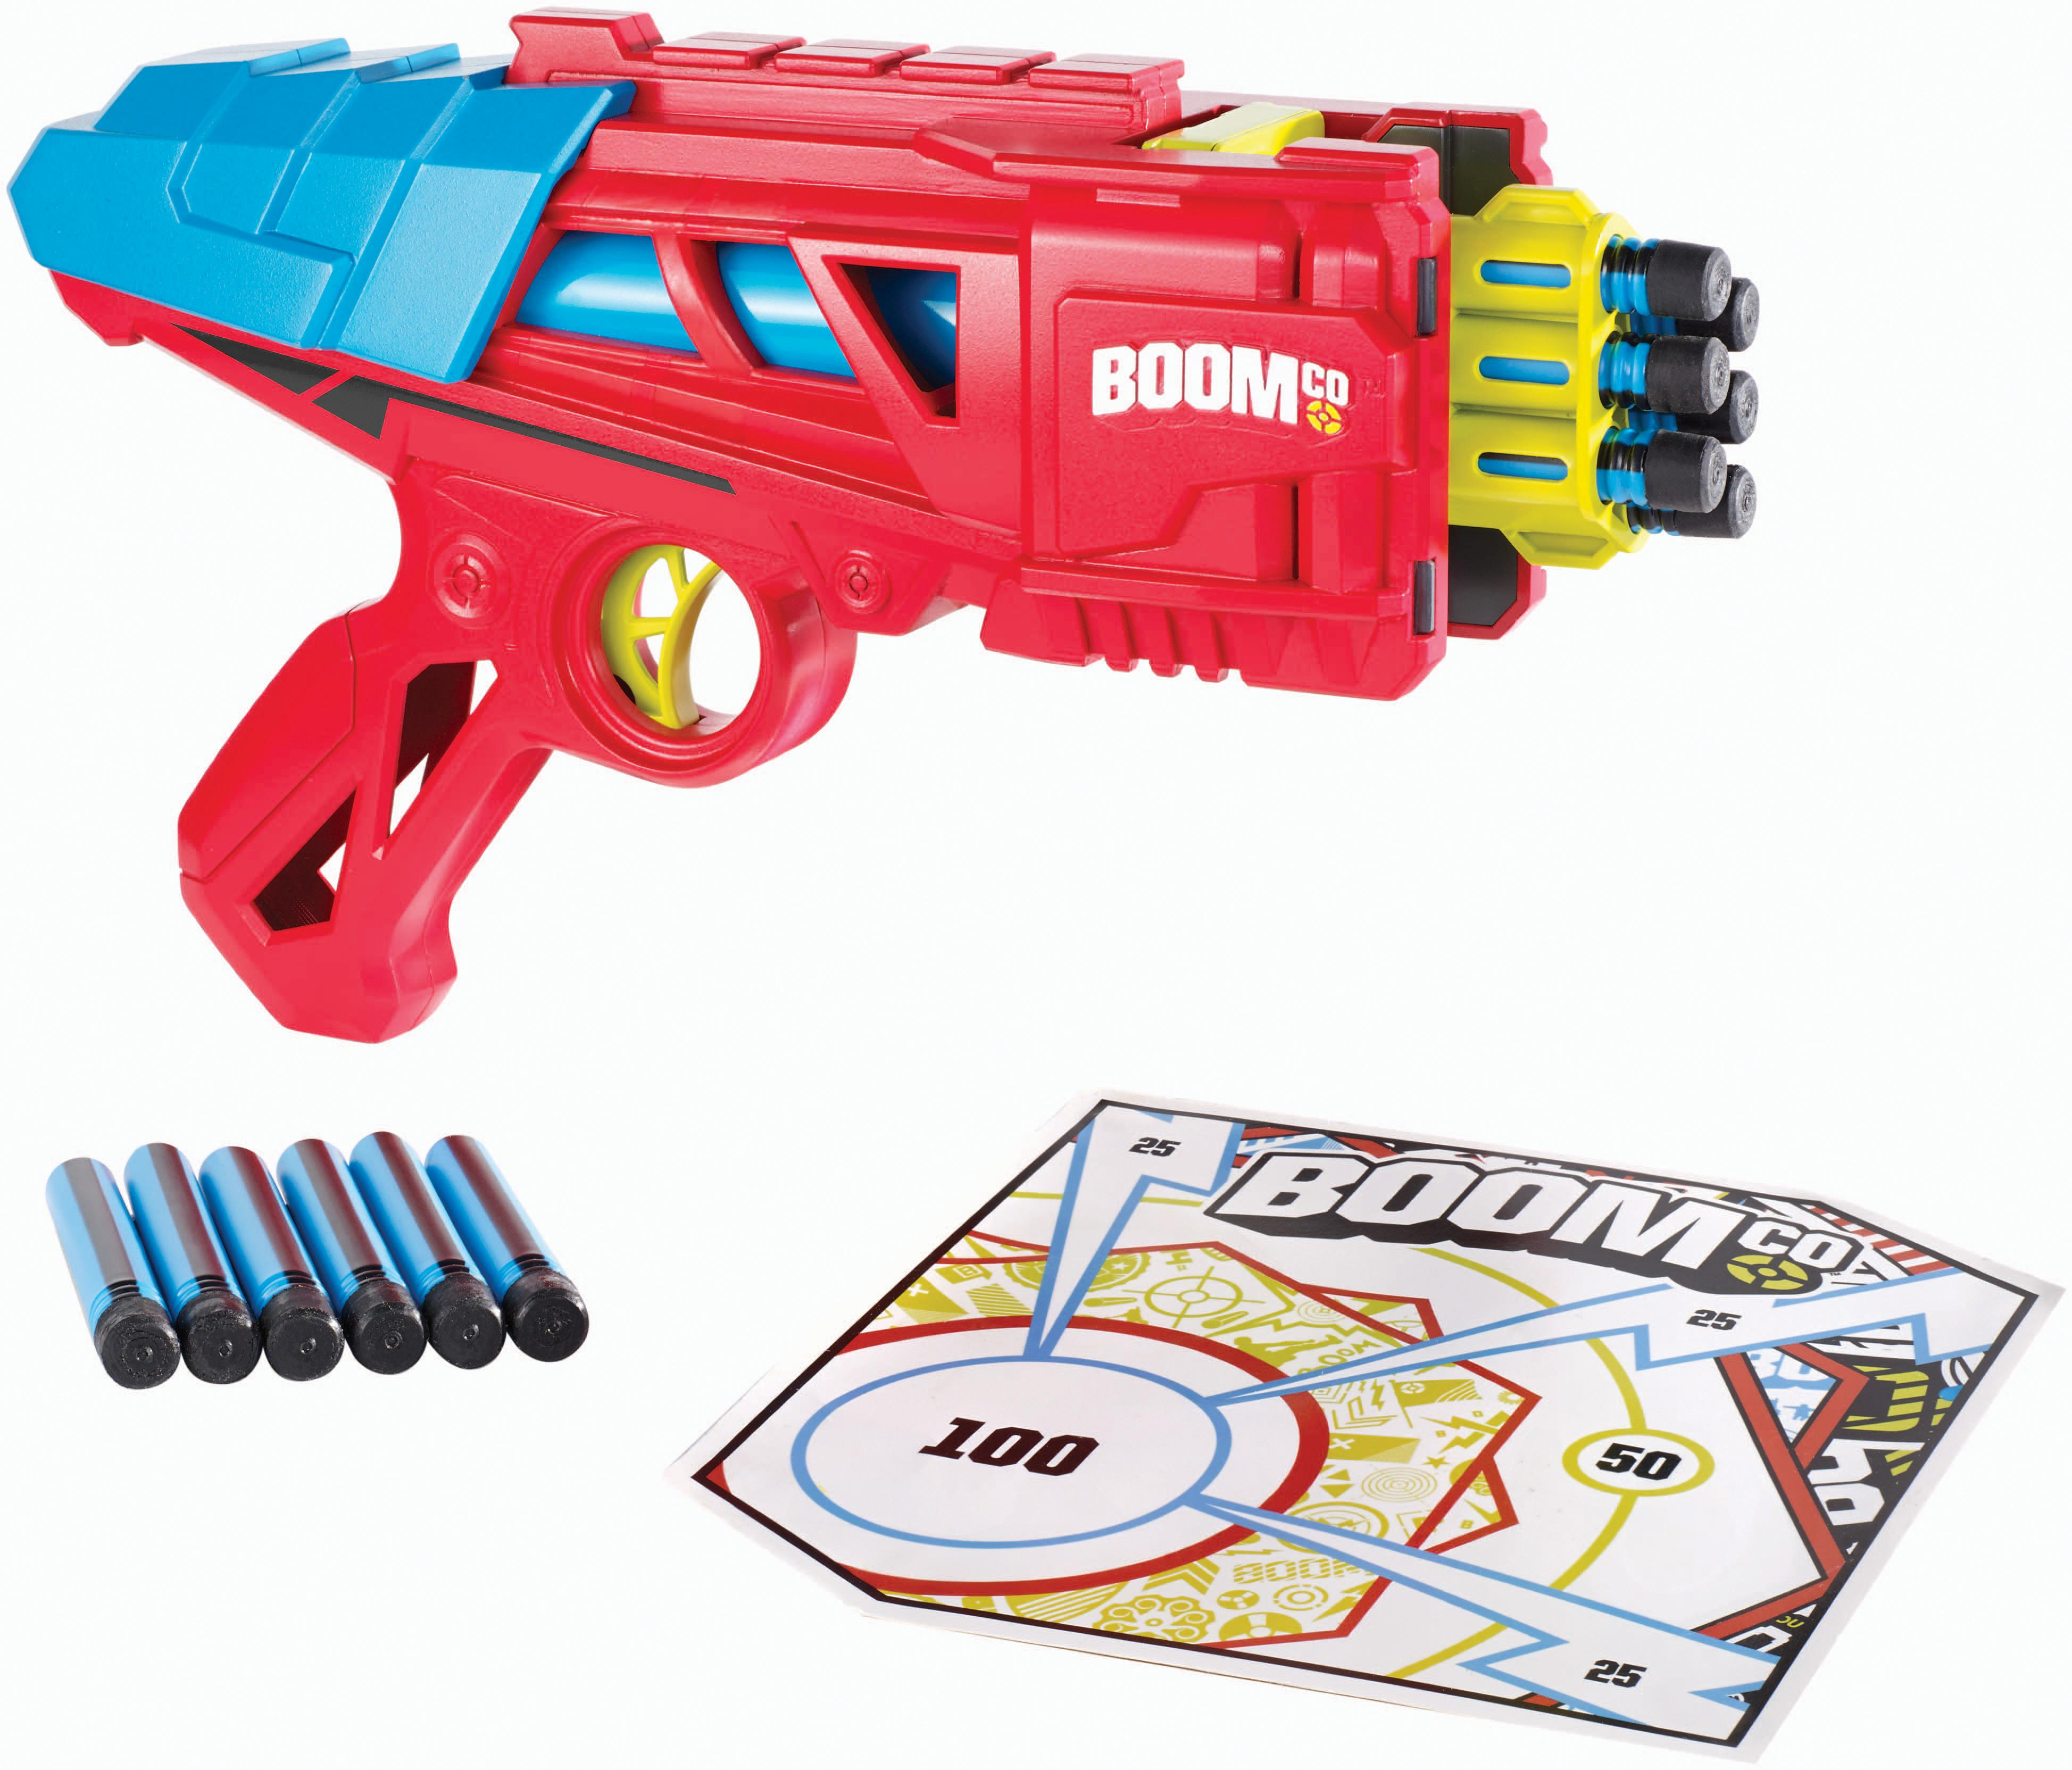 BOOMco. blasters look cool with sleek lines and bold angles, and offer